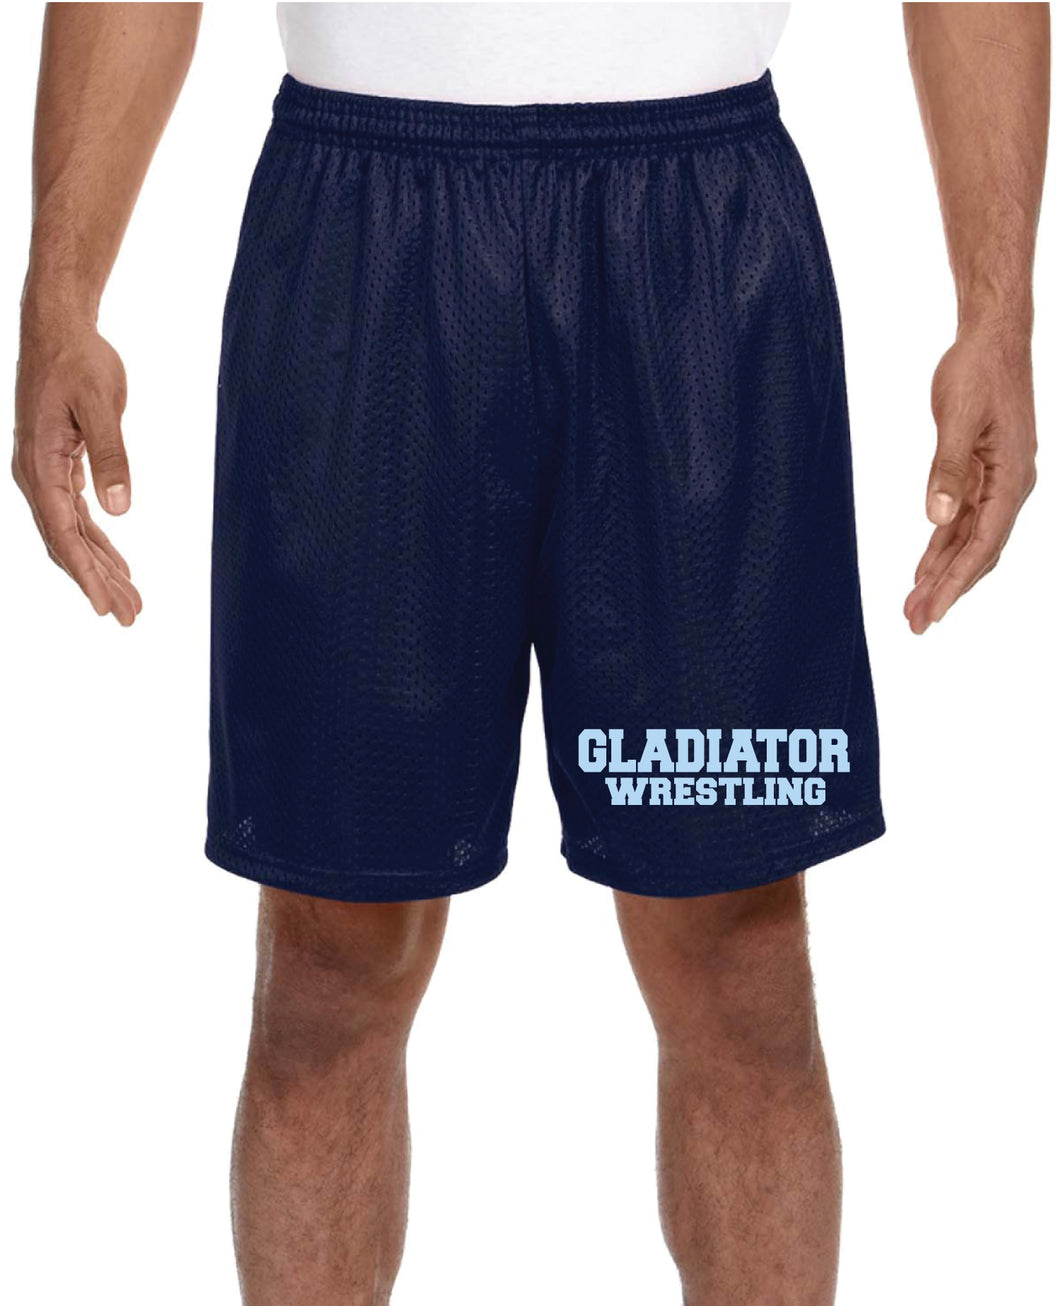 Bristol Gladiators Tech Shorts